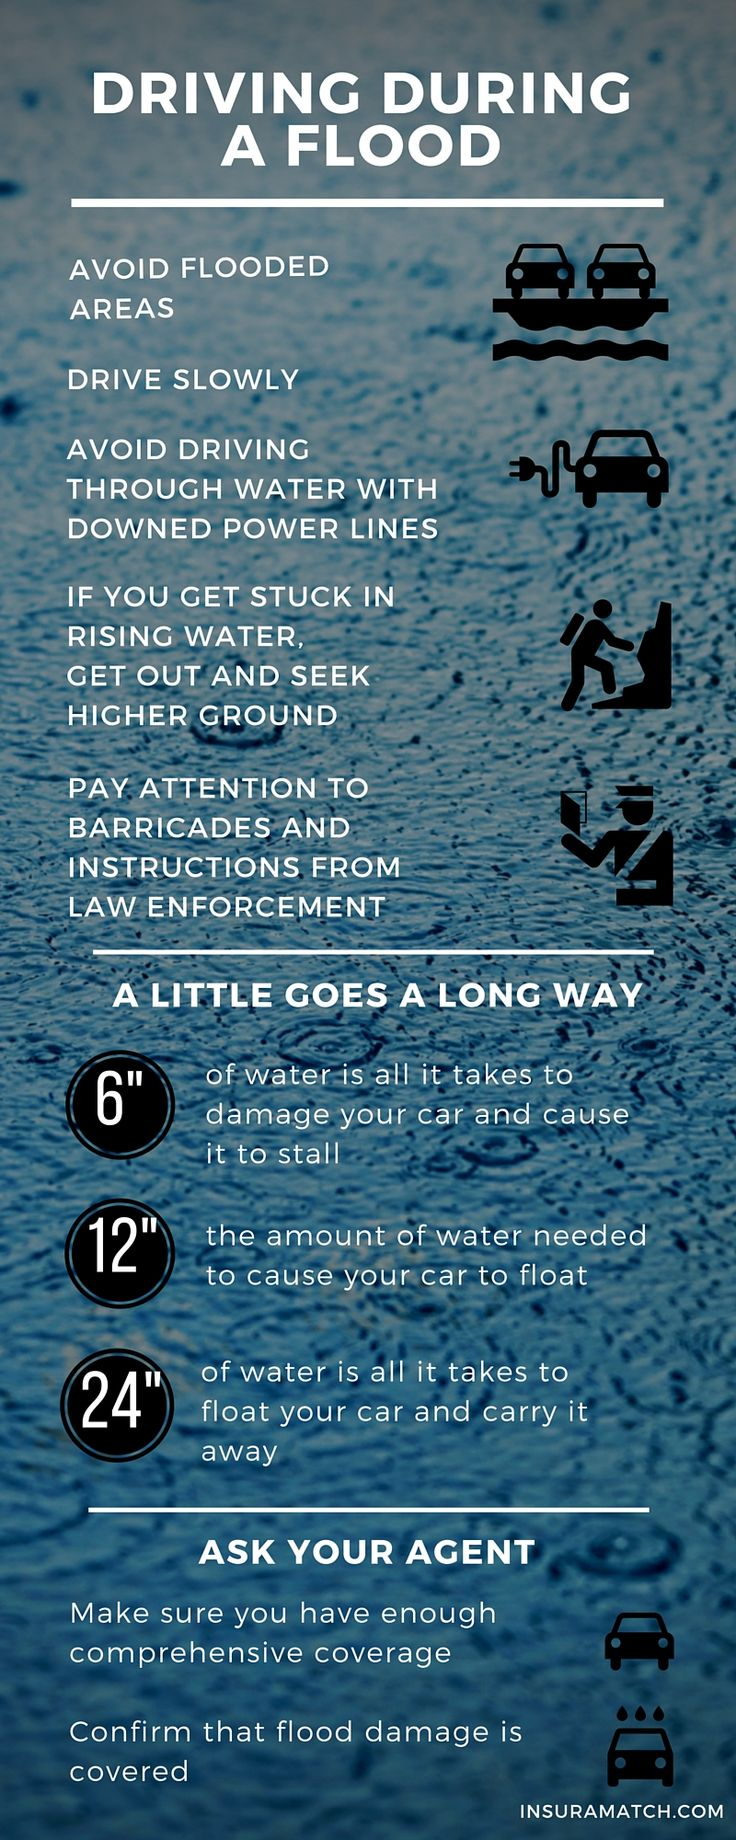 Driving during a flood is extremely dangerous - it's best to stay off the roads. However, if you are unable to avoid roads with water, here are some tips for driving during a flood.